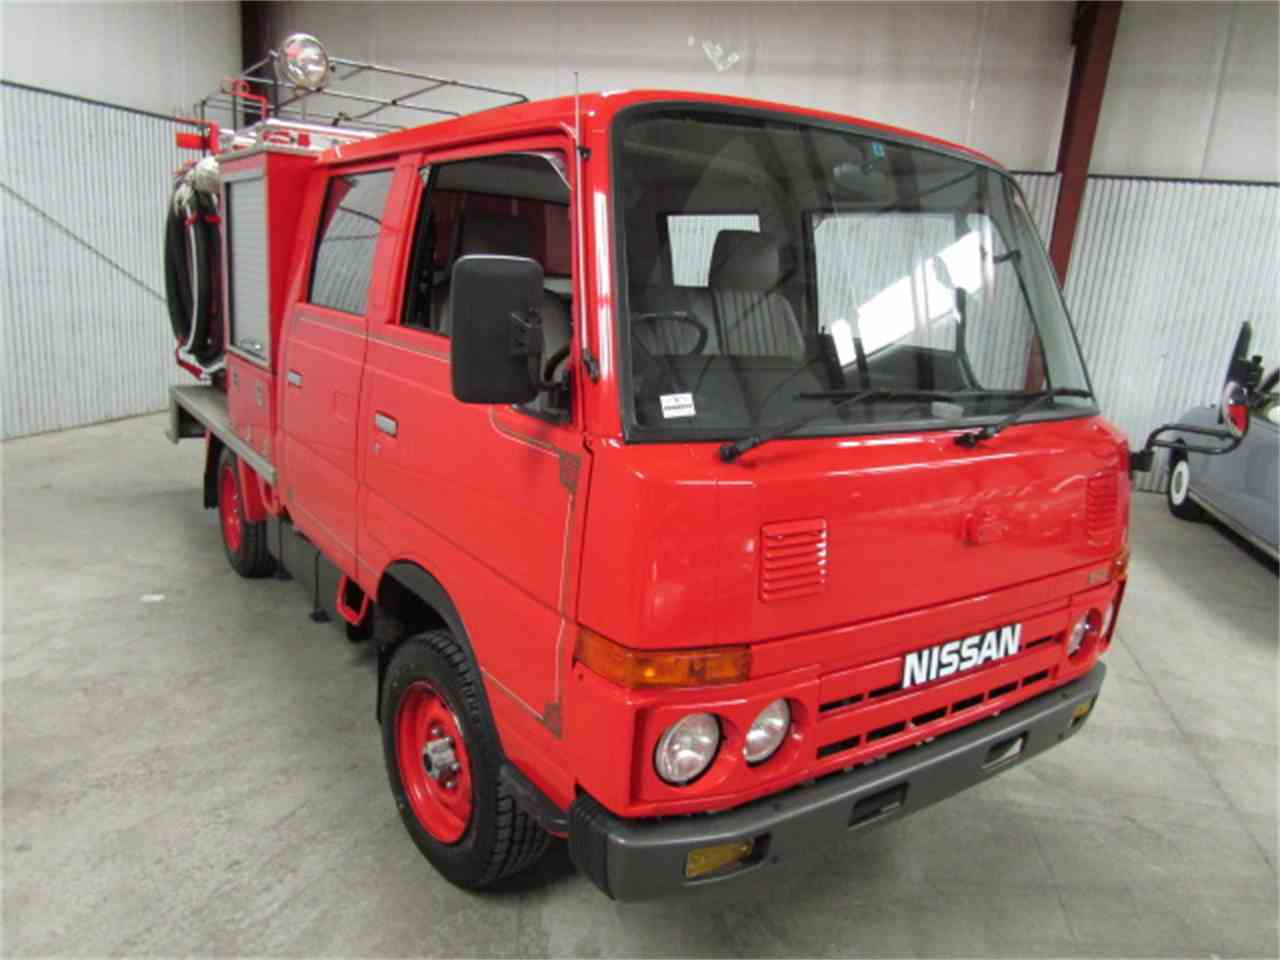 Large Picture of 1991 Nissan Atlas - $11,900.00 Offered by Duncan Imports & Classic Cars - JM4D